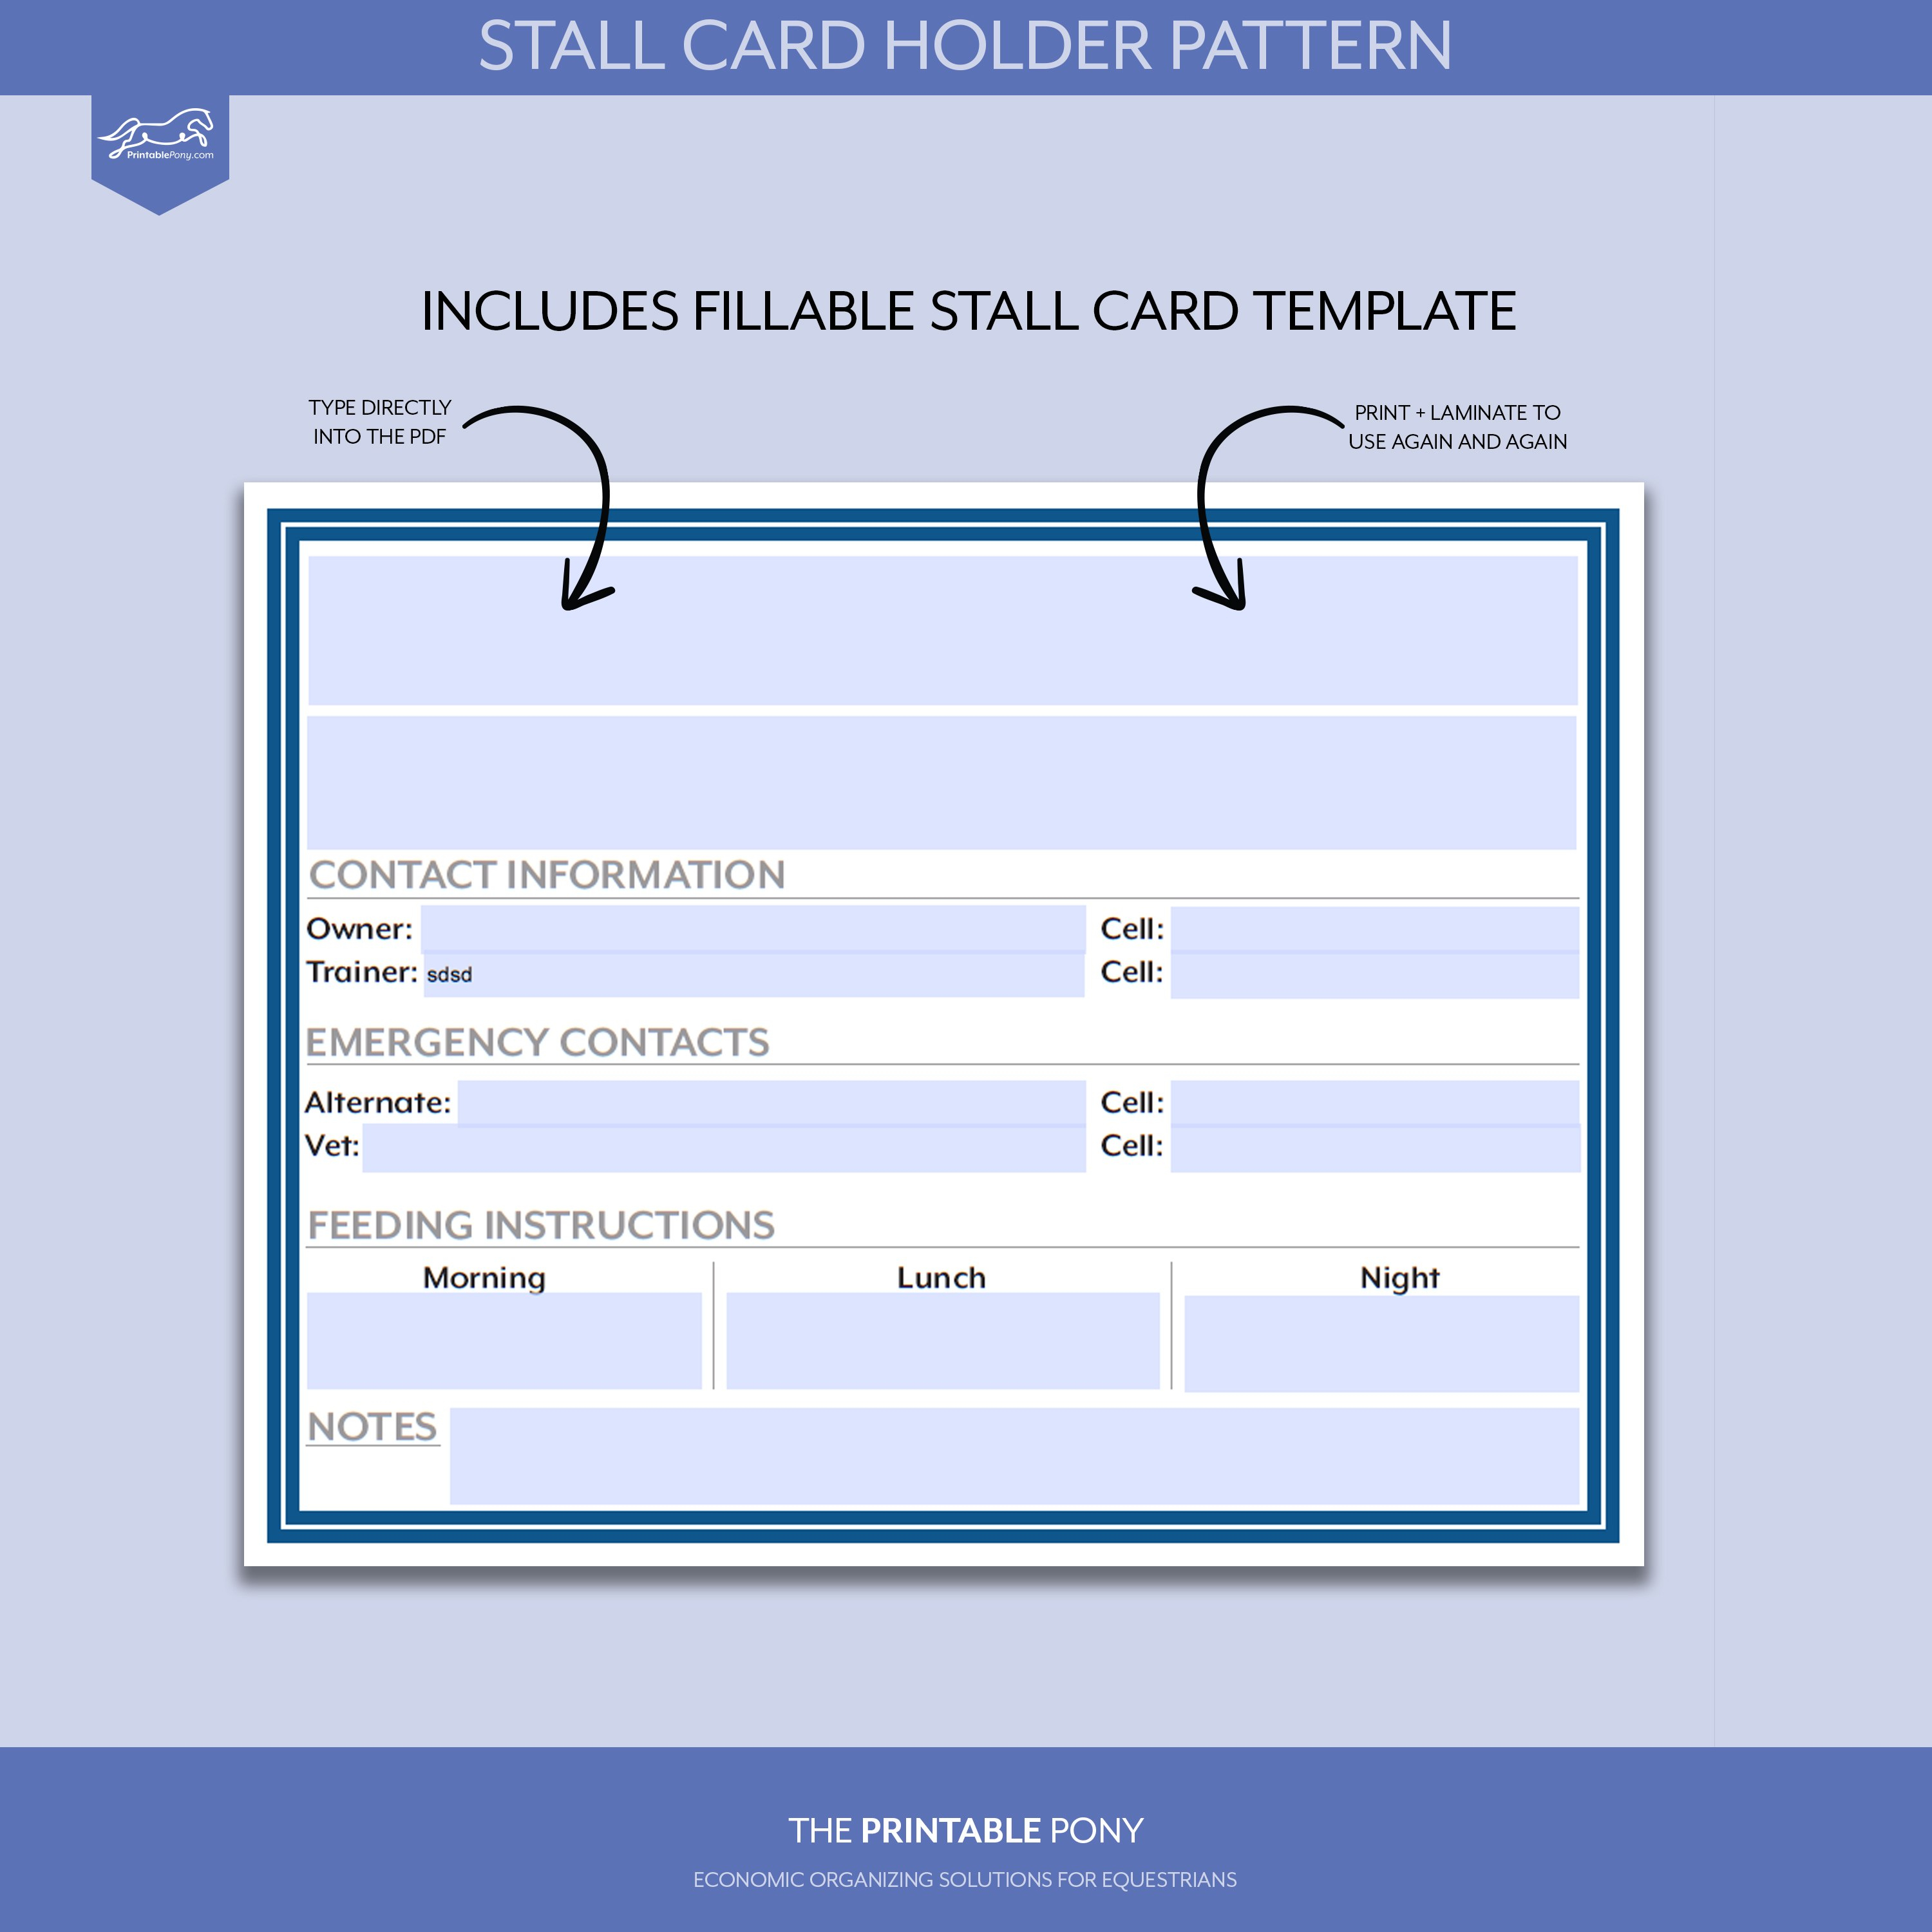 Stall Card Holder Pattern  Printable Stall Card  The Printable Pony Within Horse Stall Card Template